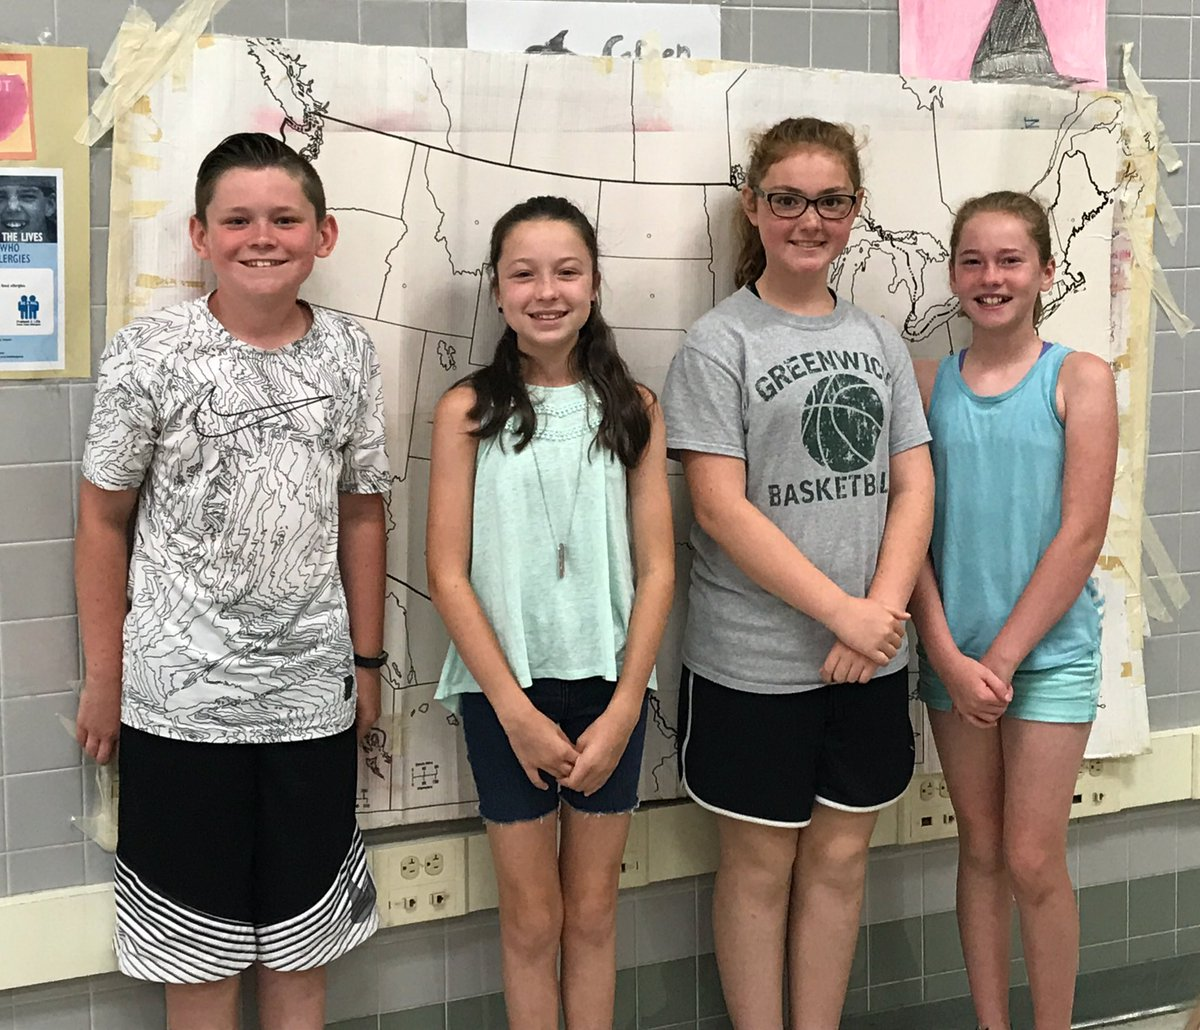 Our winning team from the annual Fifth Grade Geography Bowl - Noah, Caroline, Sophia and Dorothy. Congratulations Mr. Andrew&#39;s class! #GES <br>http://pic.twitter.com/B0boBAnlJl